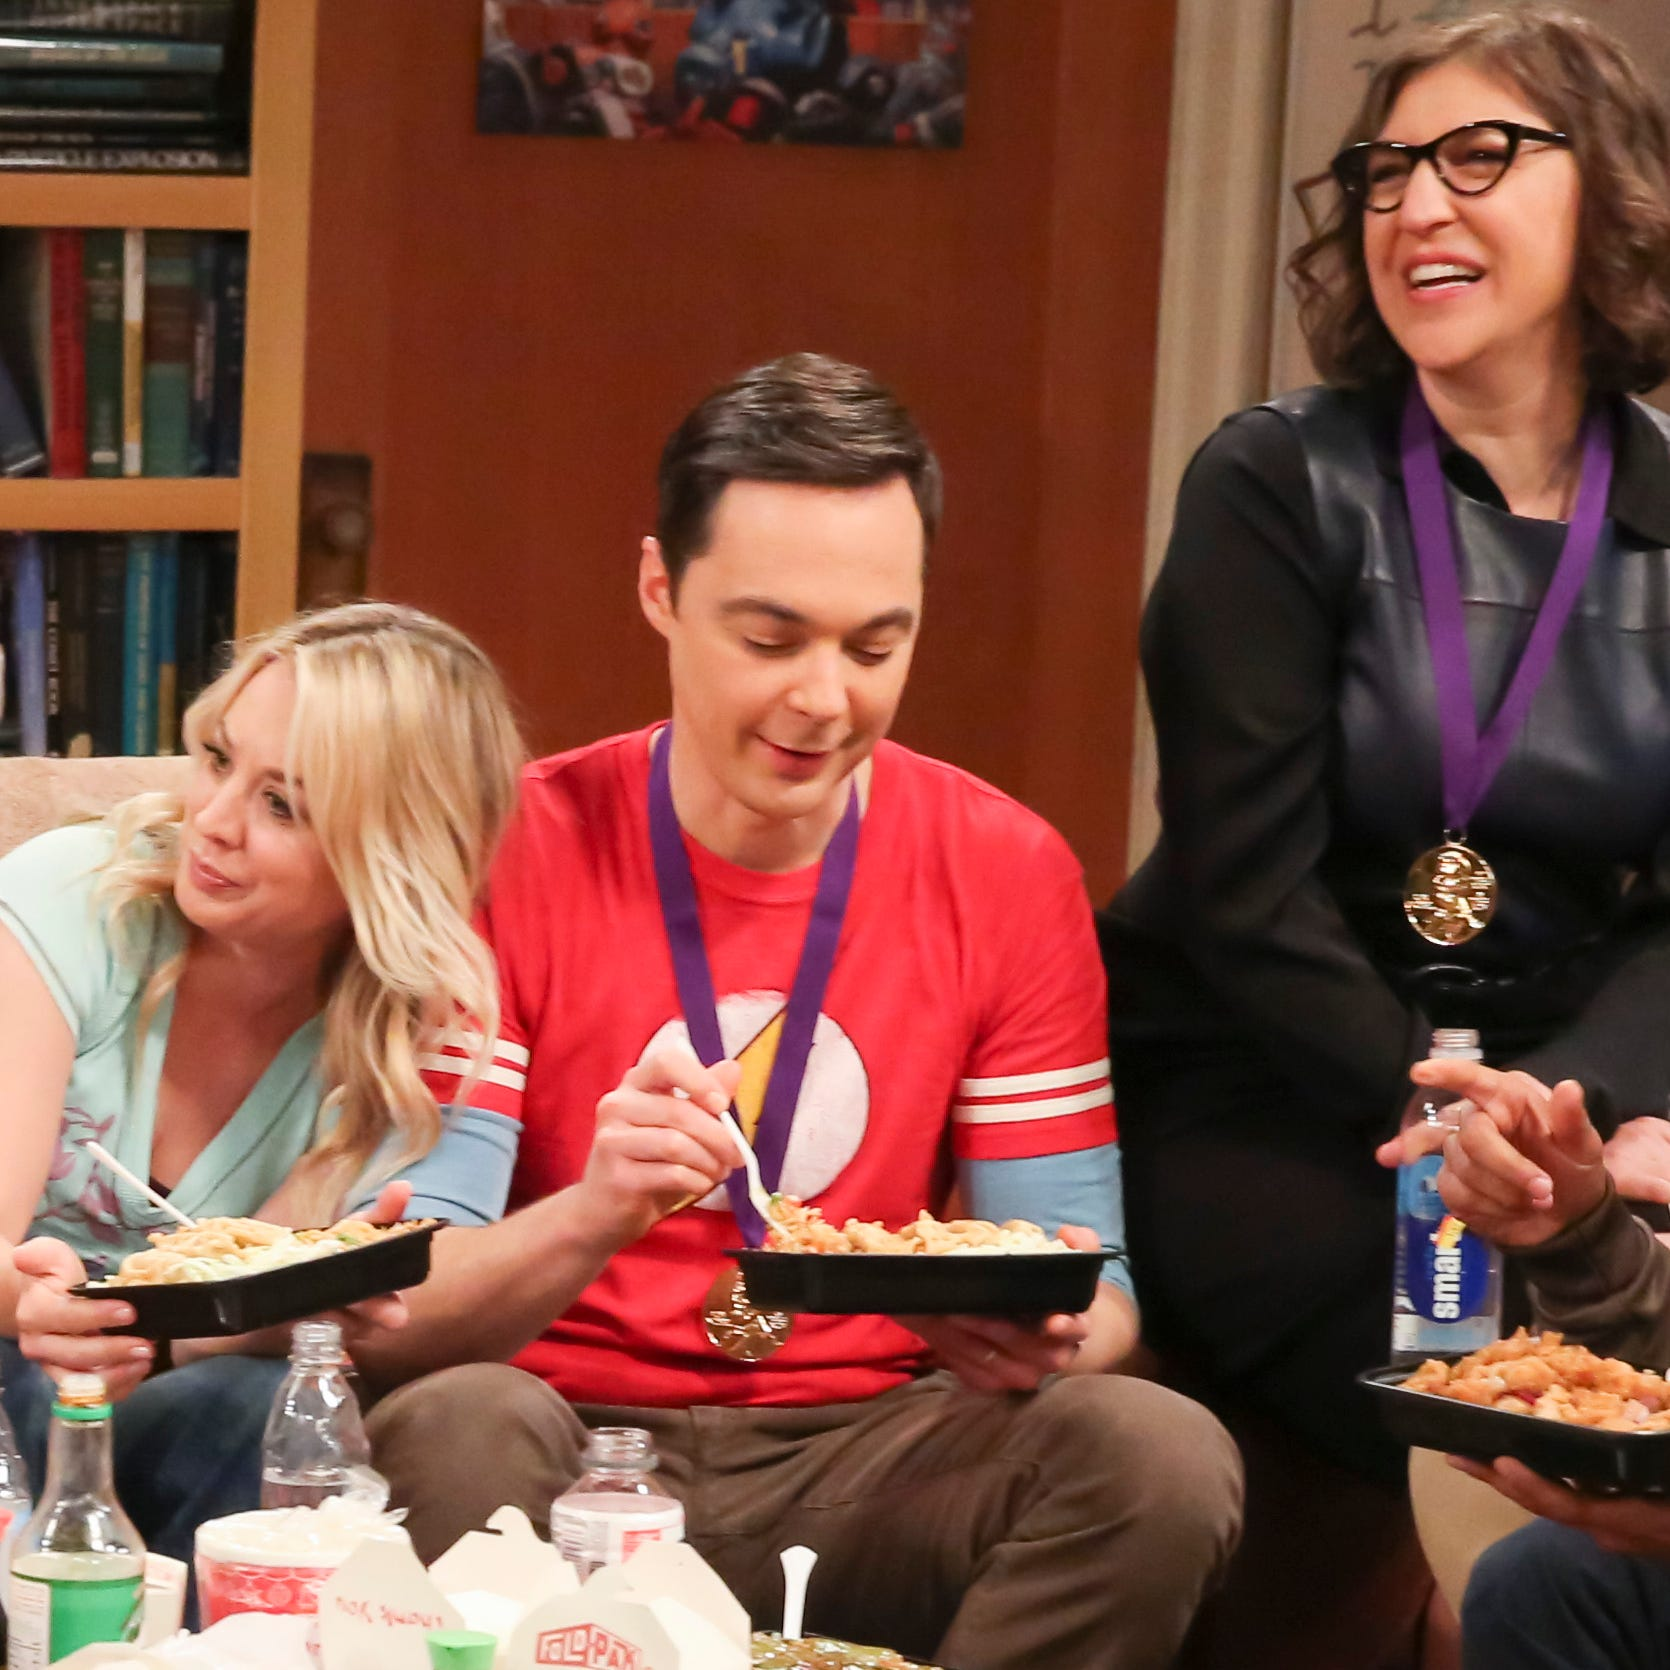 """""""The Stockholm Syndrome"""" - Pictured: Bernadette (Melissa Rauch), Howard Wolowitz (Simon Helberg), Leonard Hofstadter (Johnny Galecki), Penny (Kaley Cuoco), Sheldon Cooper (Jim Parsons), Amy Farrah Fowler (Mayim Bialik) and Rajesh Koothrappali (Kunal Nayyar). Bernadette and Wolowitz leave their kids for the first time, Penny and Leonard try to keep a secret, Sheldon and Amy stick together, and Koothrappali makes a new friend as the gang travels together into an uncharted future, on the series finale of THE BIG BANG THEORY, Thursday, May 16 (8:30 - 9:00PM, ET/PT) on the CBS Television Network. Photo: Michael Yarish/CBS ©2019 CBS Broadcasting, Inc. All Rights Reserved"""